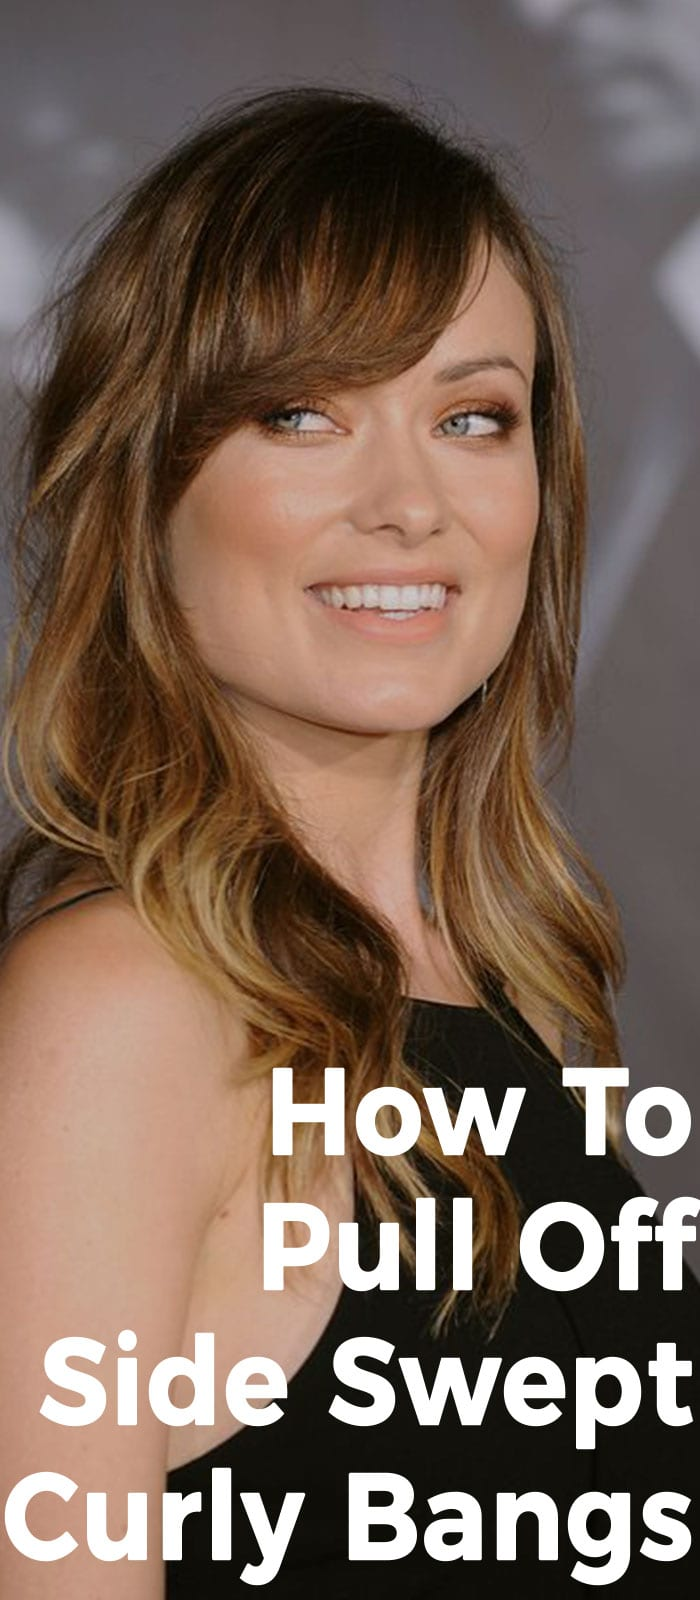 How To Pull Off Side Swept Curly Bangs